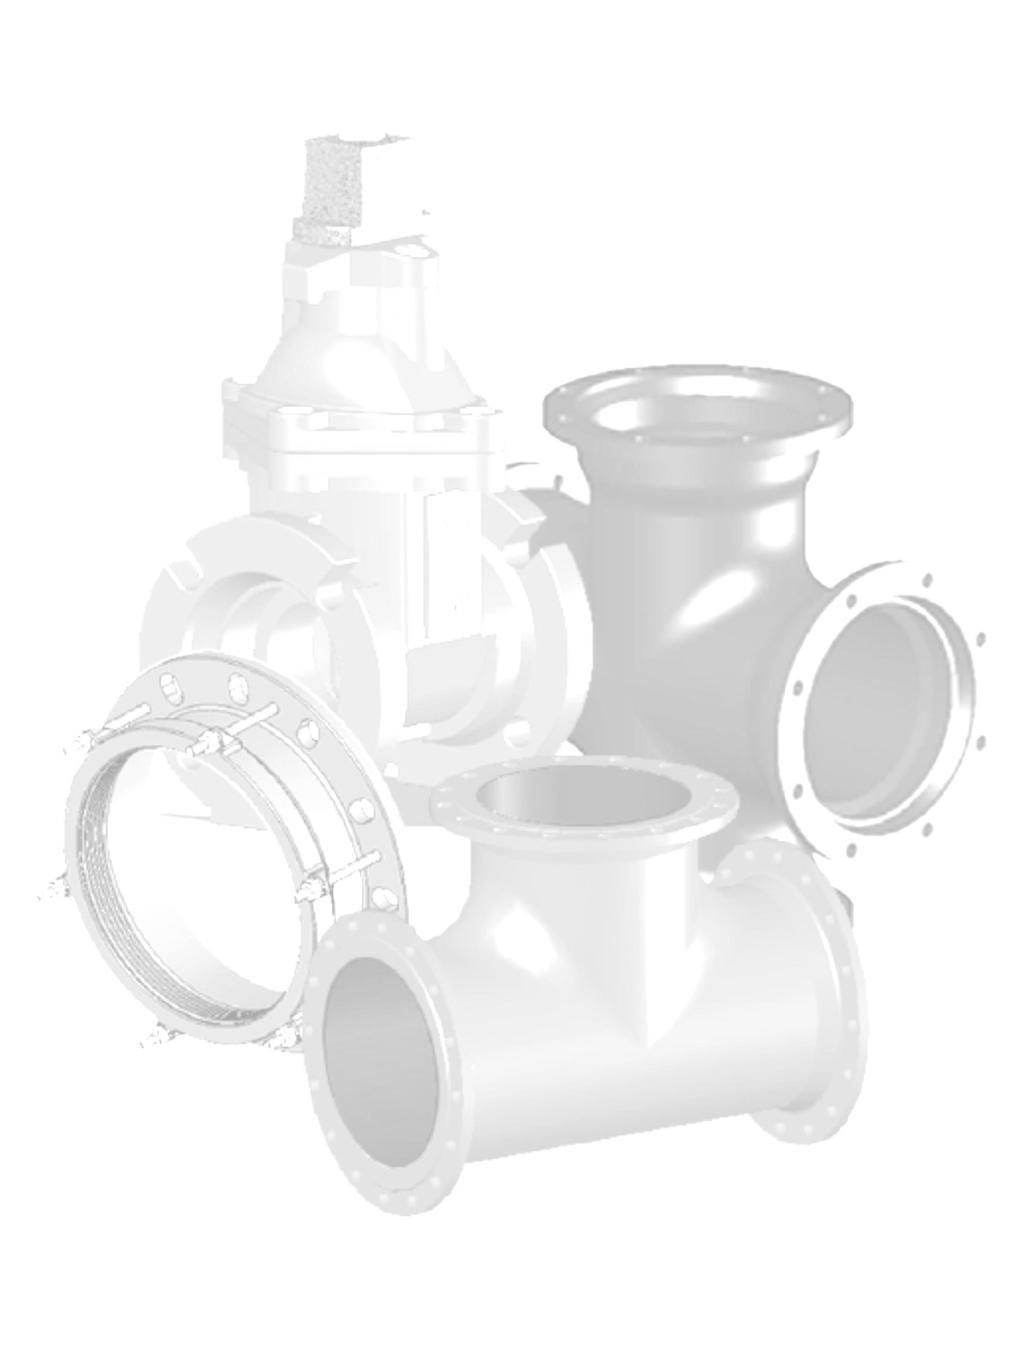 Page(s) 1 2 3 3 4 4 5 5 6 PRICE SHEET TABLE OF CONTENTS VALVES & HYDRANTS ( Replaces PL-1014-VLV) Product Line C515 NRS Gate Valves Series 1010 UL/FM C515 NRS Gate Valves Series 2010 C508 Swing Check